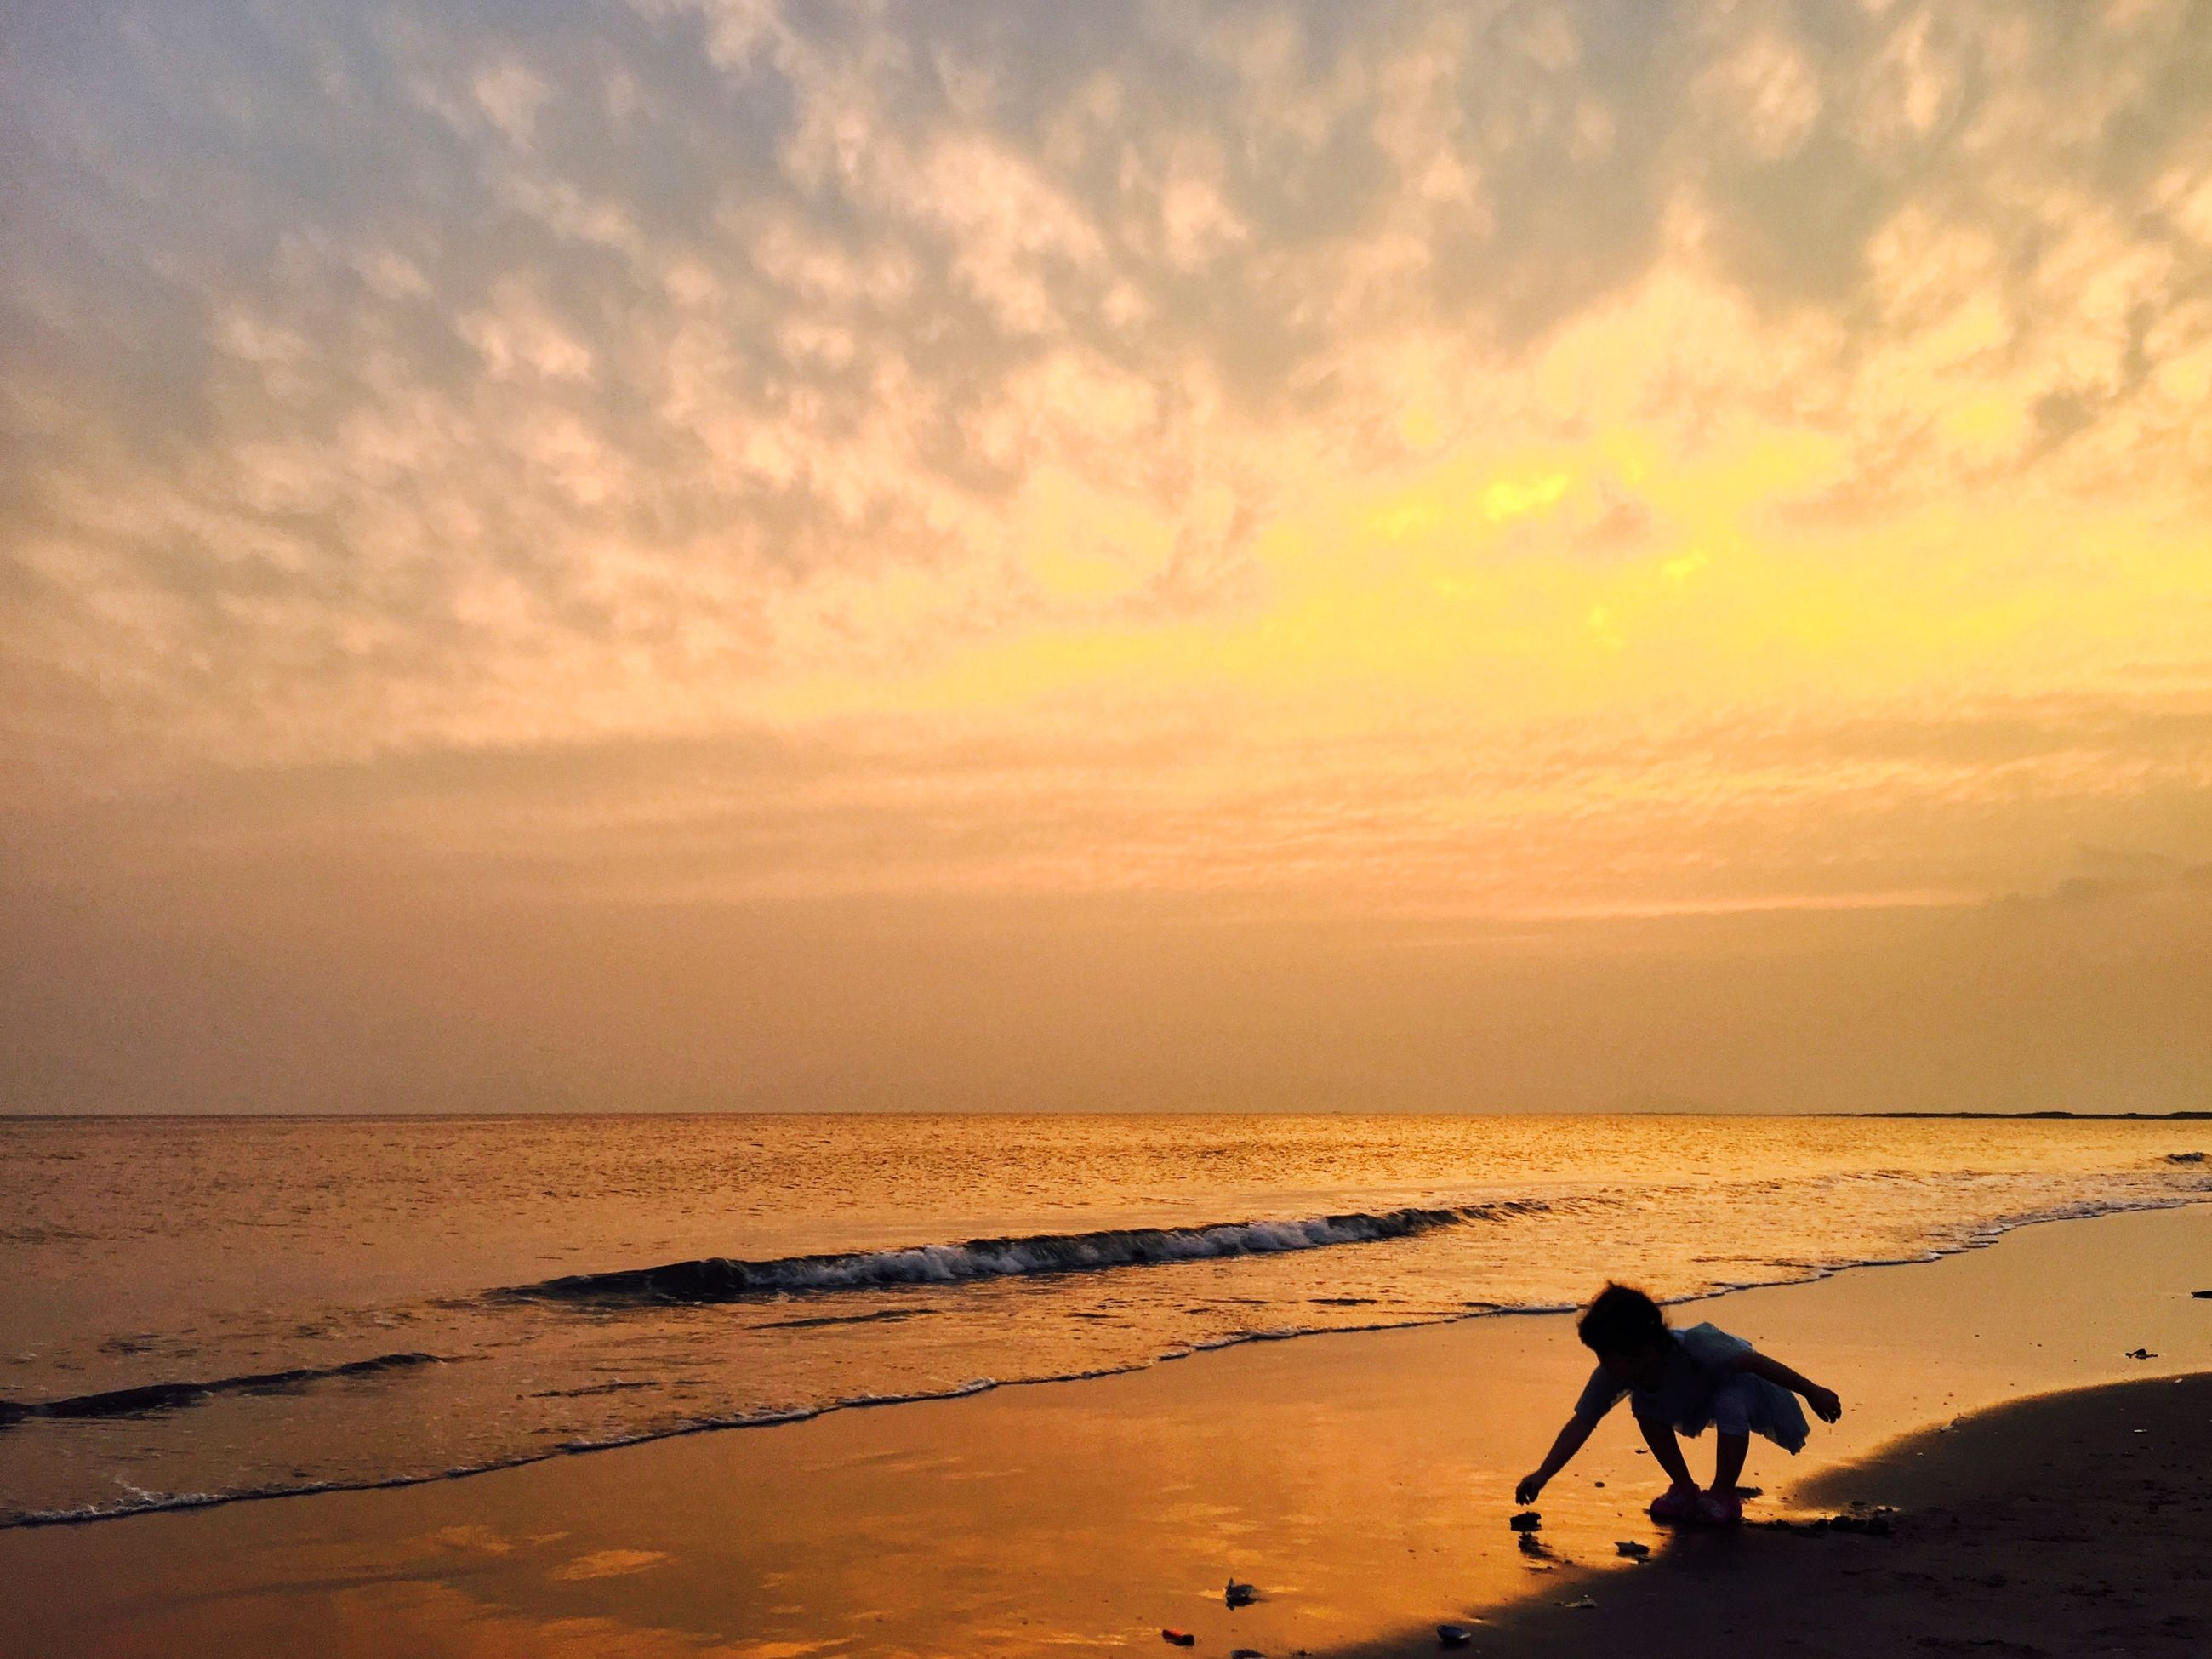 domestic animals, animal themes, beach, mammal, dog, sea, one animal, pets, sand, sky, horizon over water, shore, water, sunset, cloud - sky, full length, nature, scenics, tranquil scene, tranquility